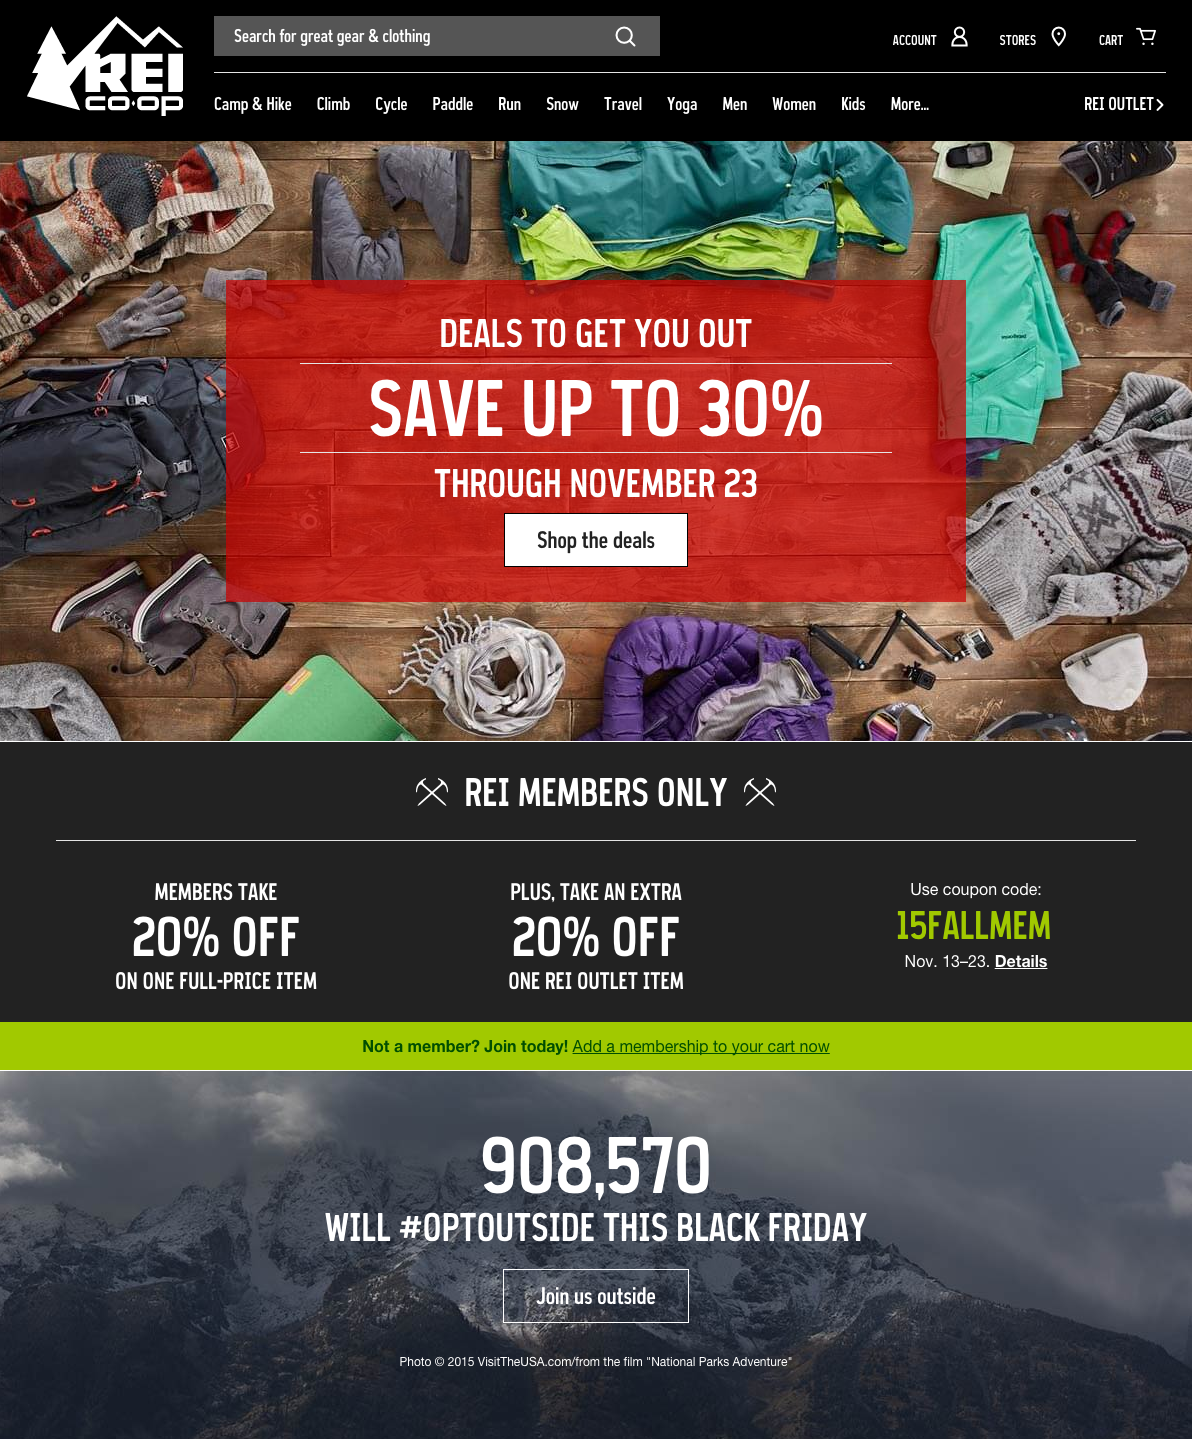 rei-holiday-homepage-redesign.png